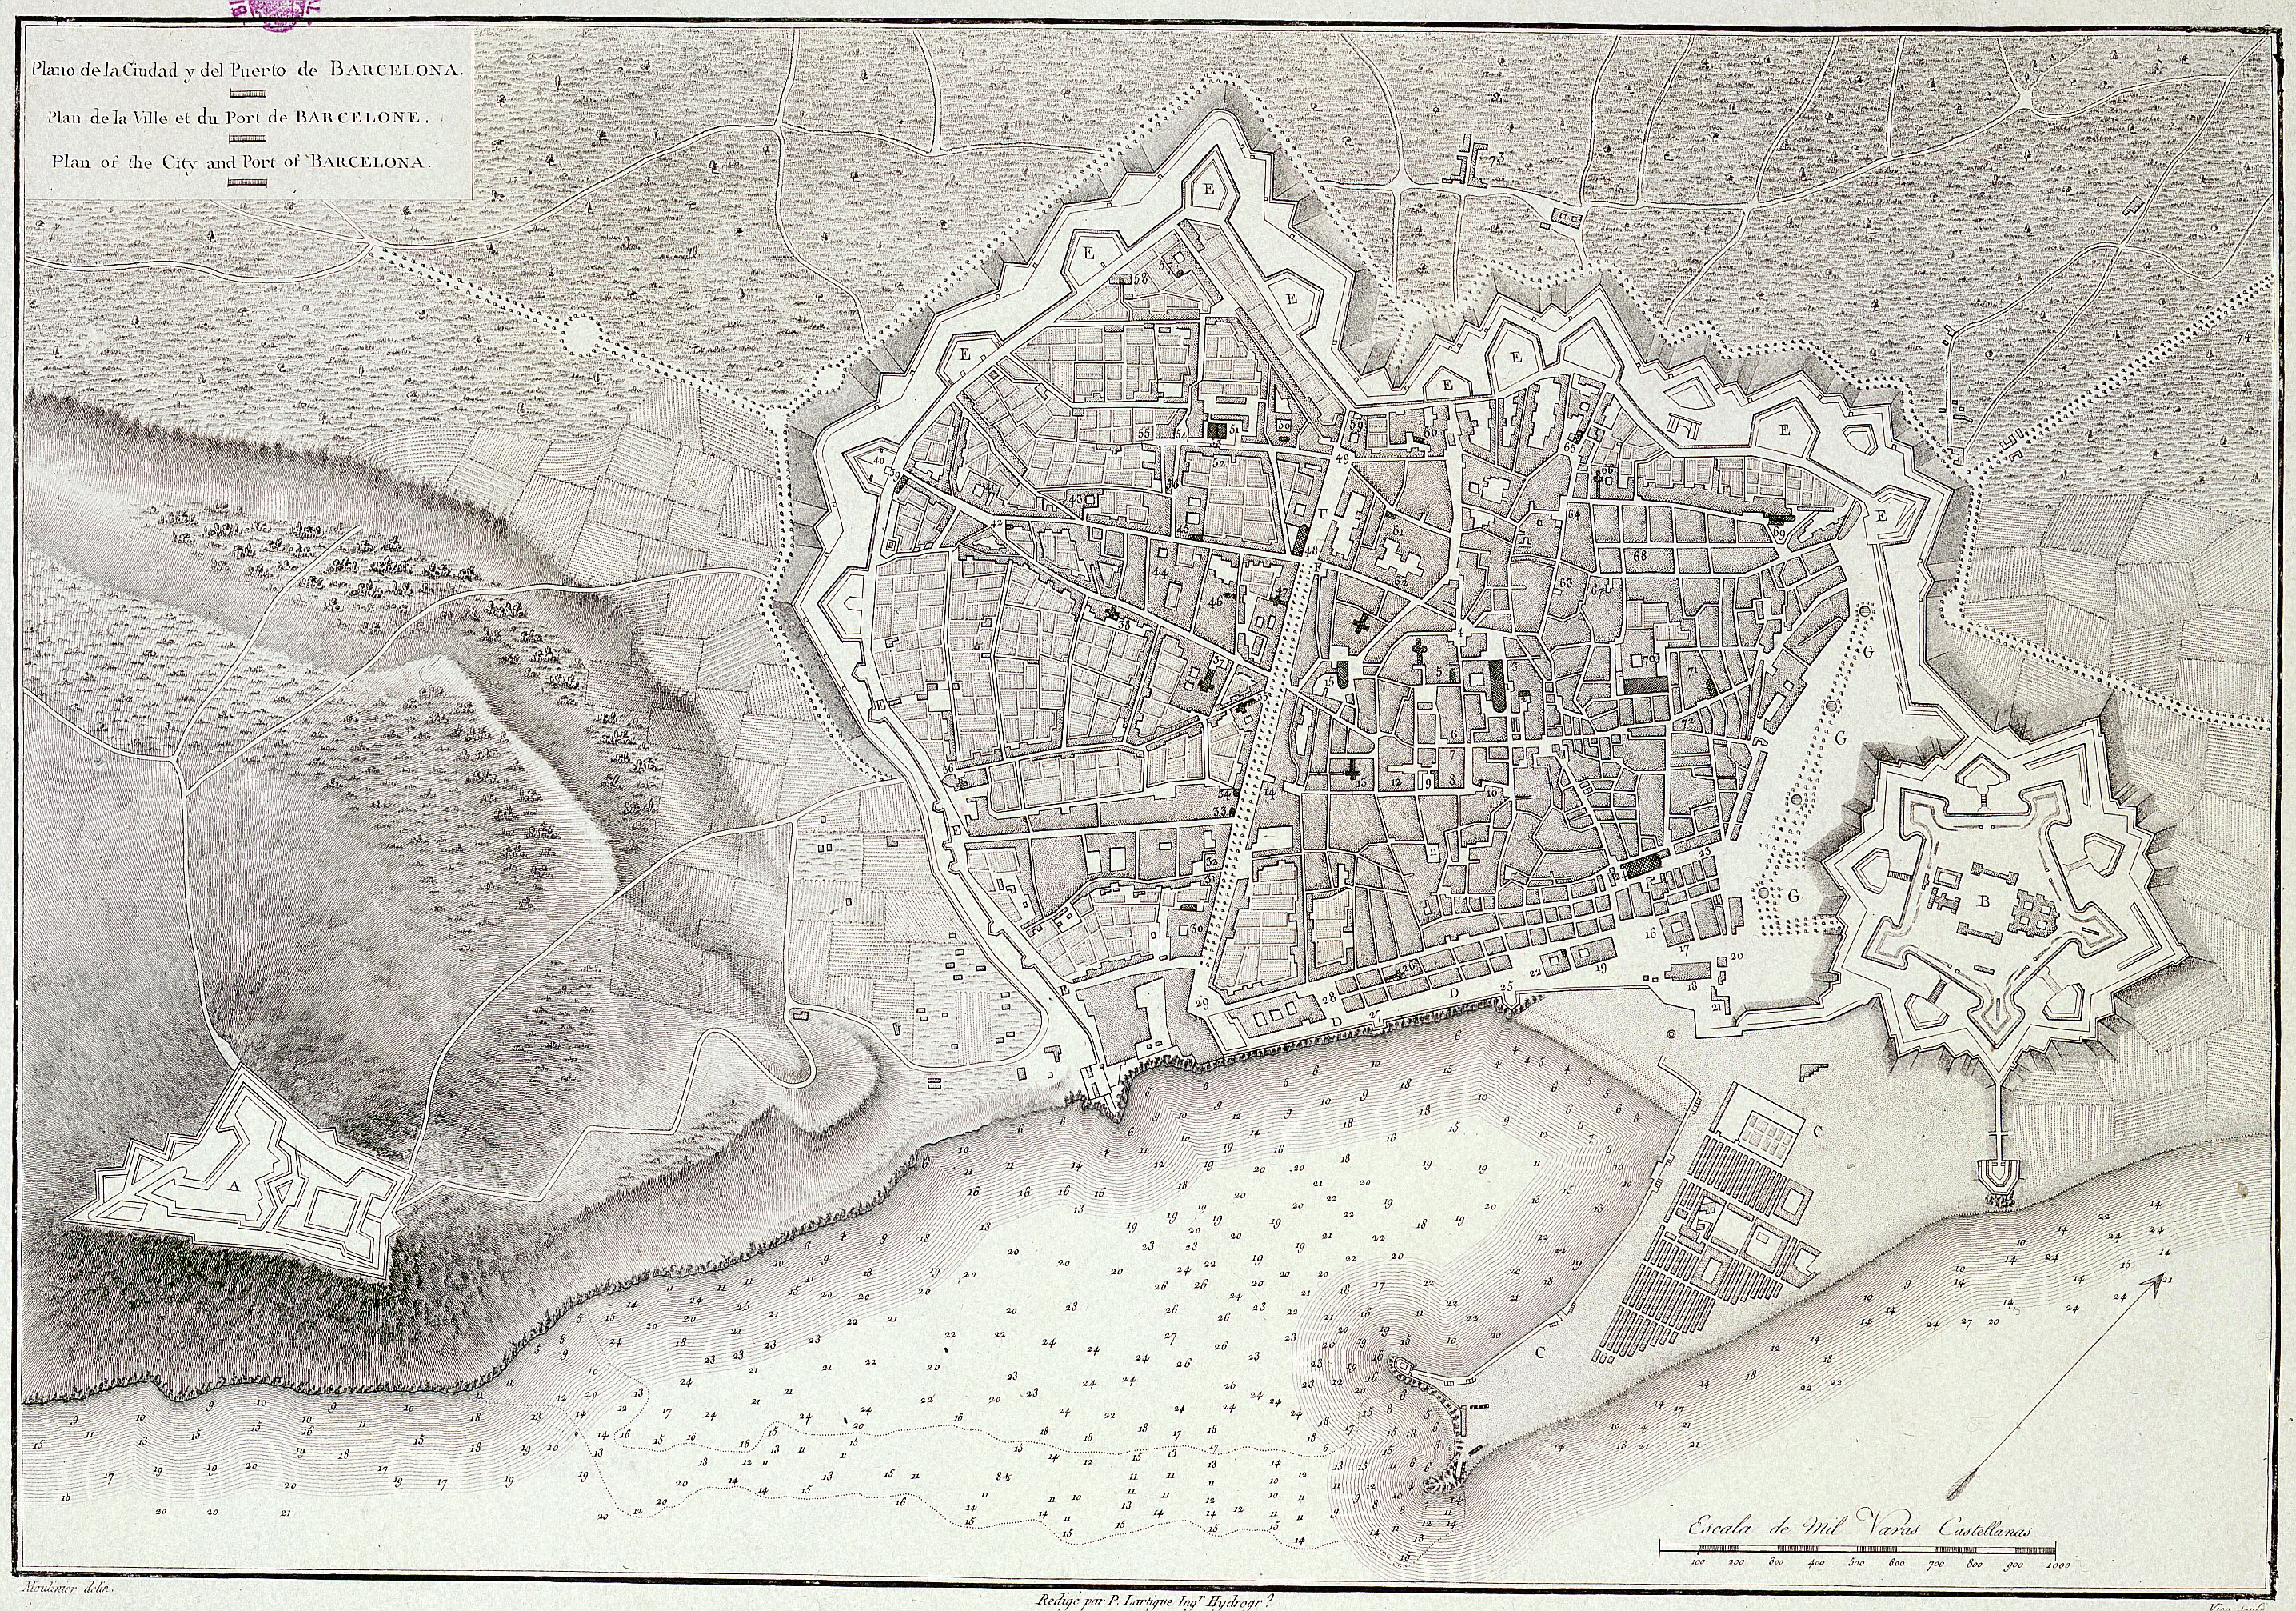 The walled city of Barcelona and the Citadel 1806